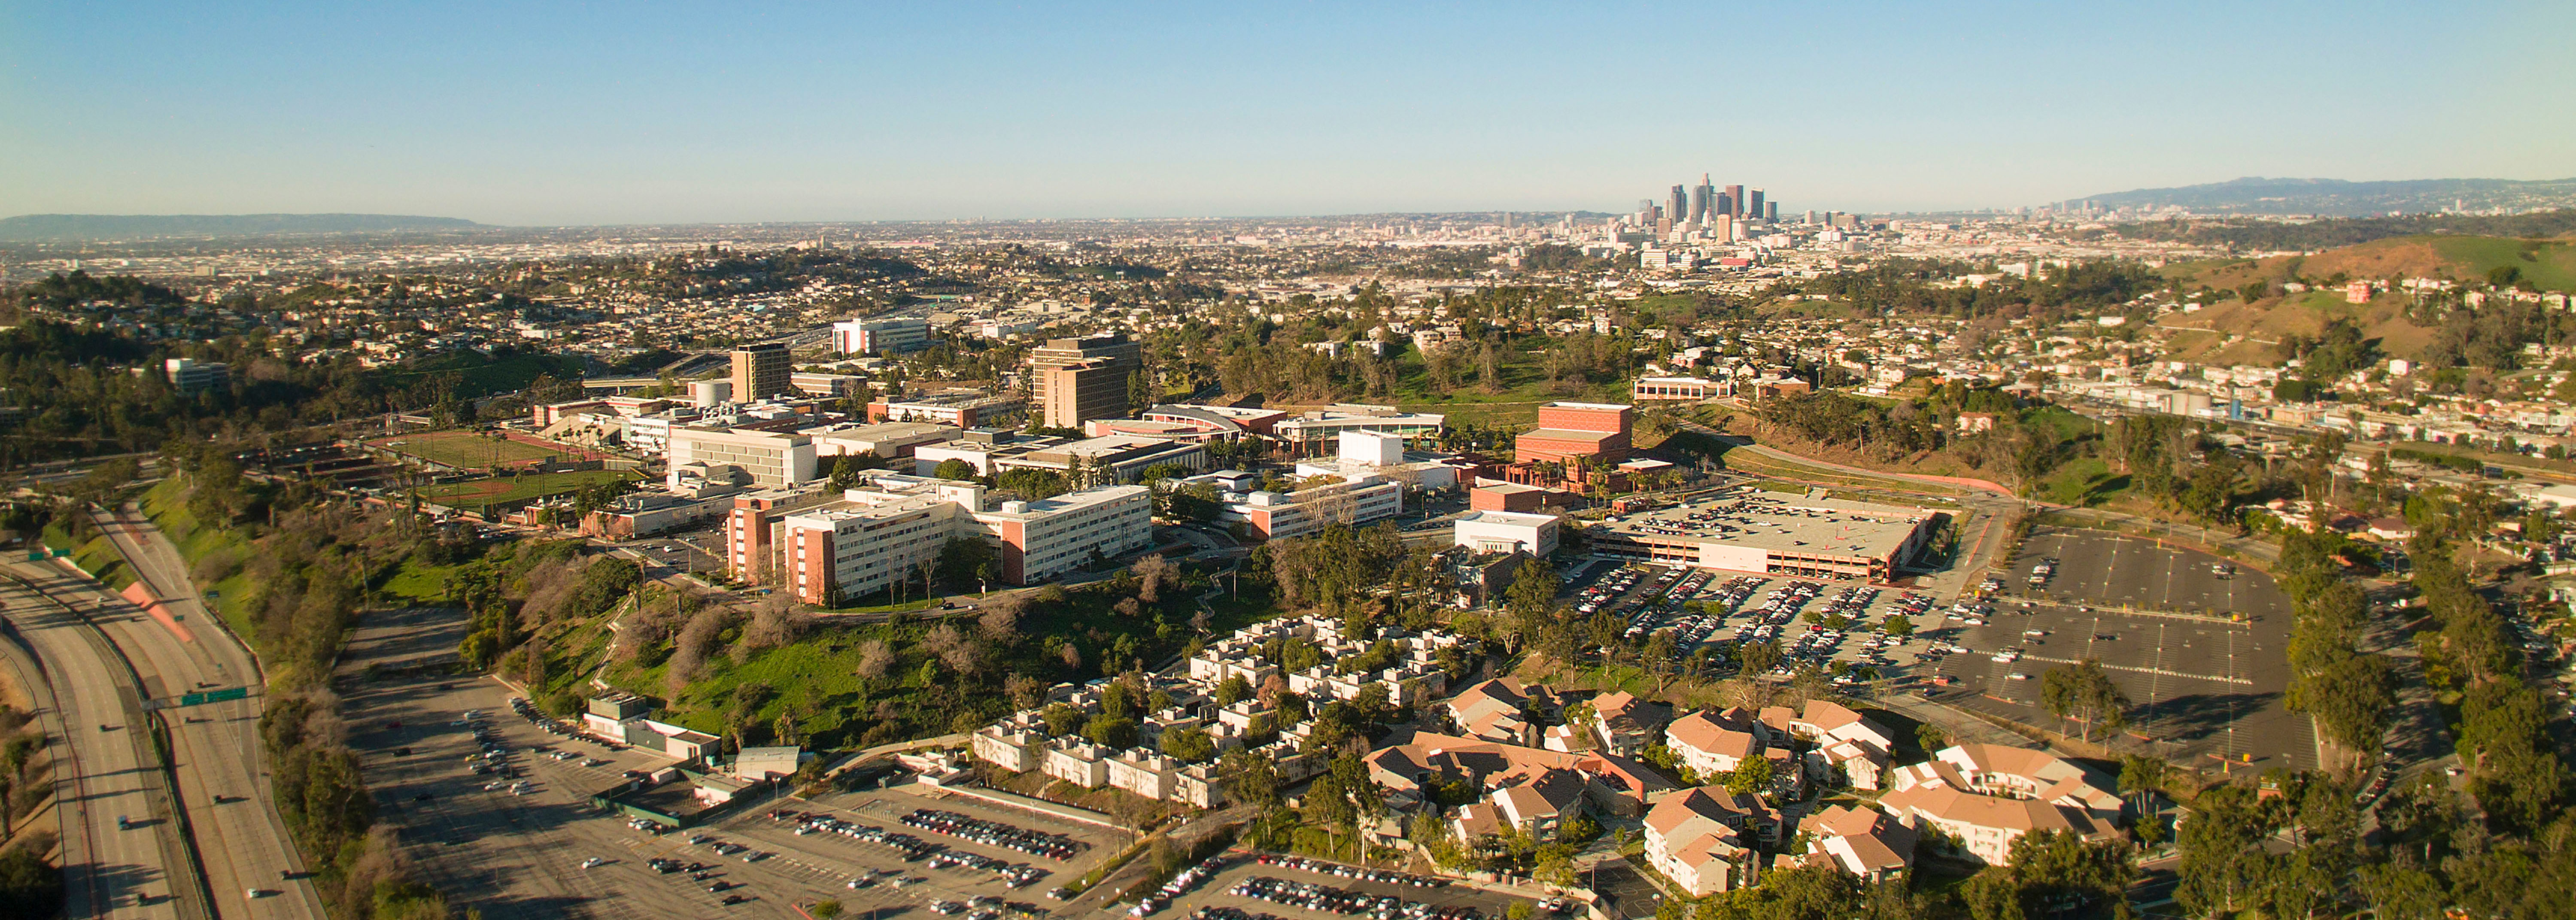 aerial photo of Cal State LA